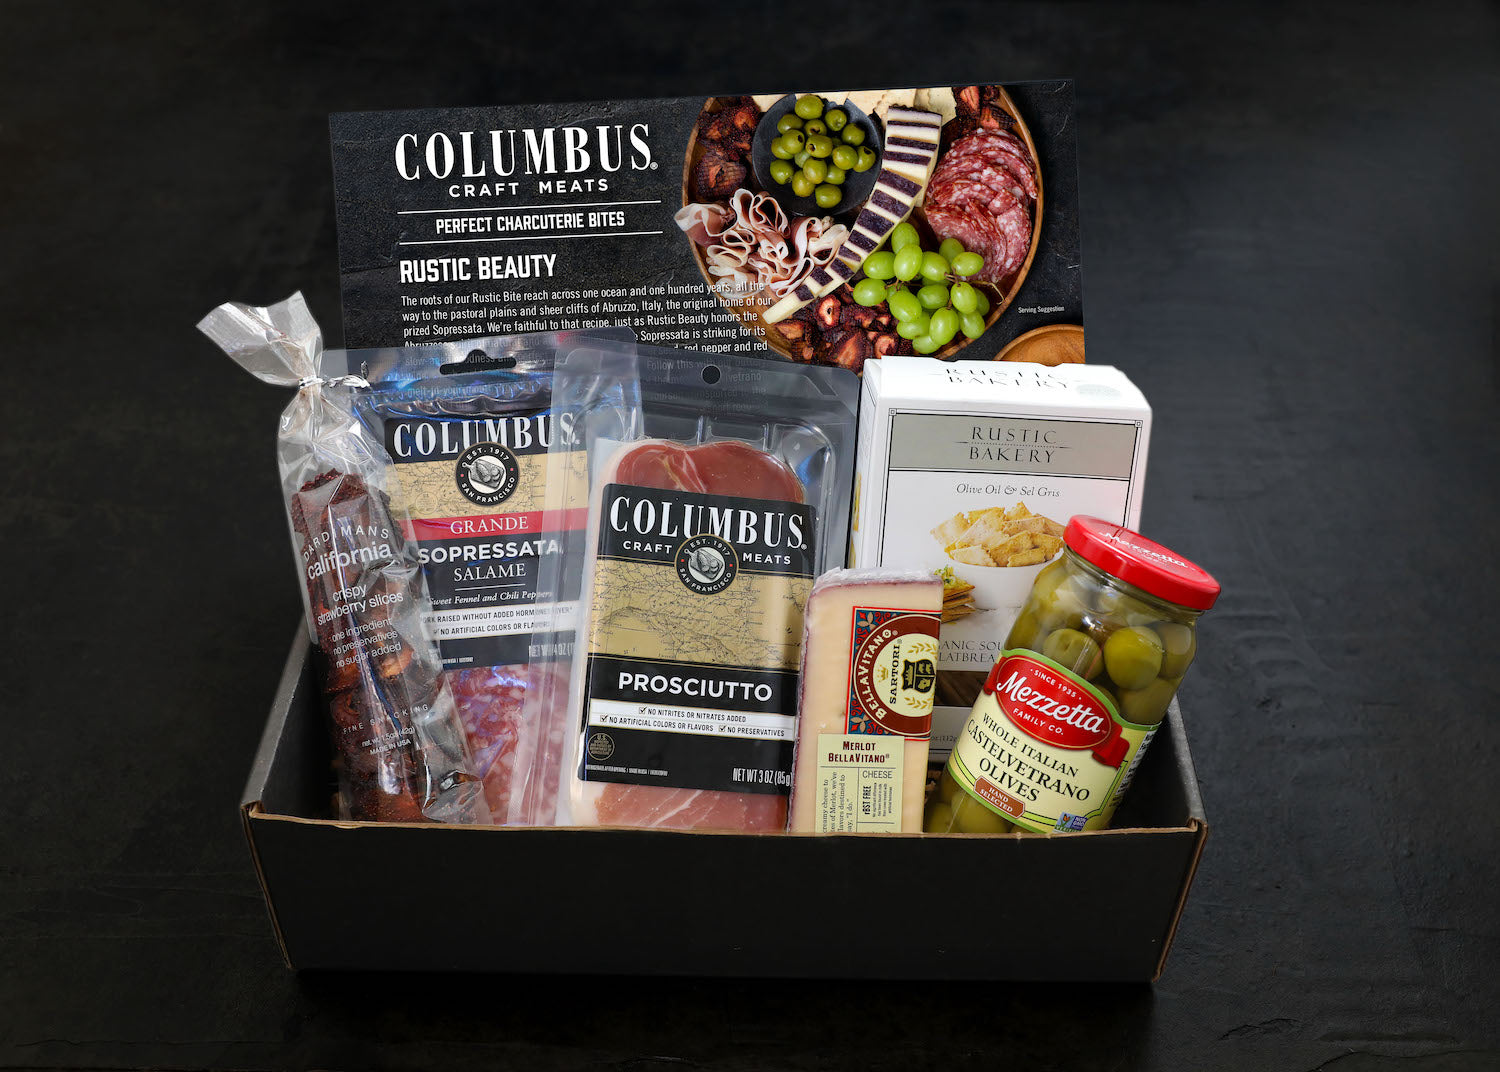 Perfect Charcuterie Bite - Rustic Beauty - Retail Price $54.99